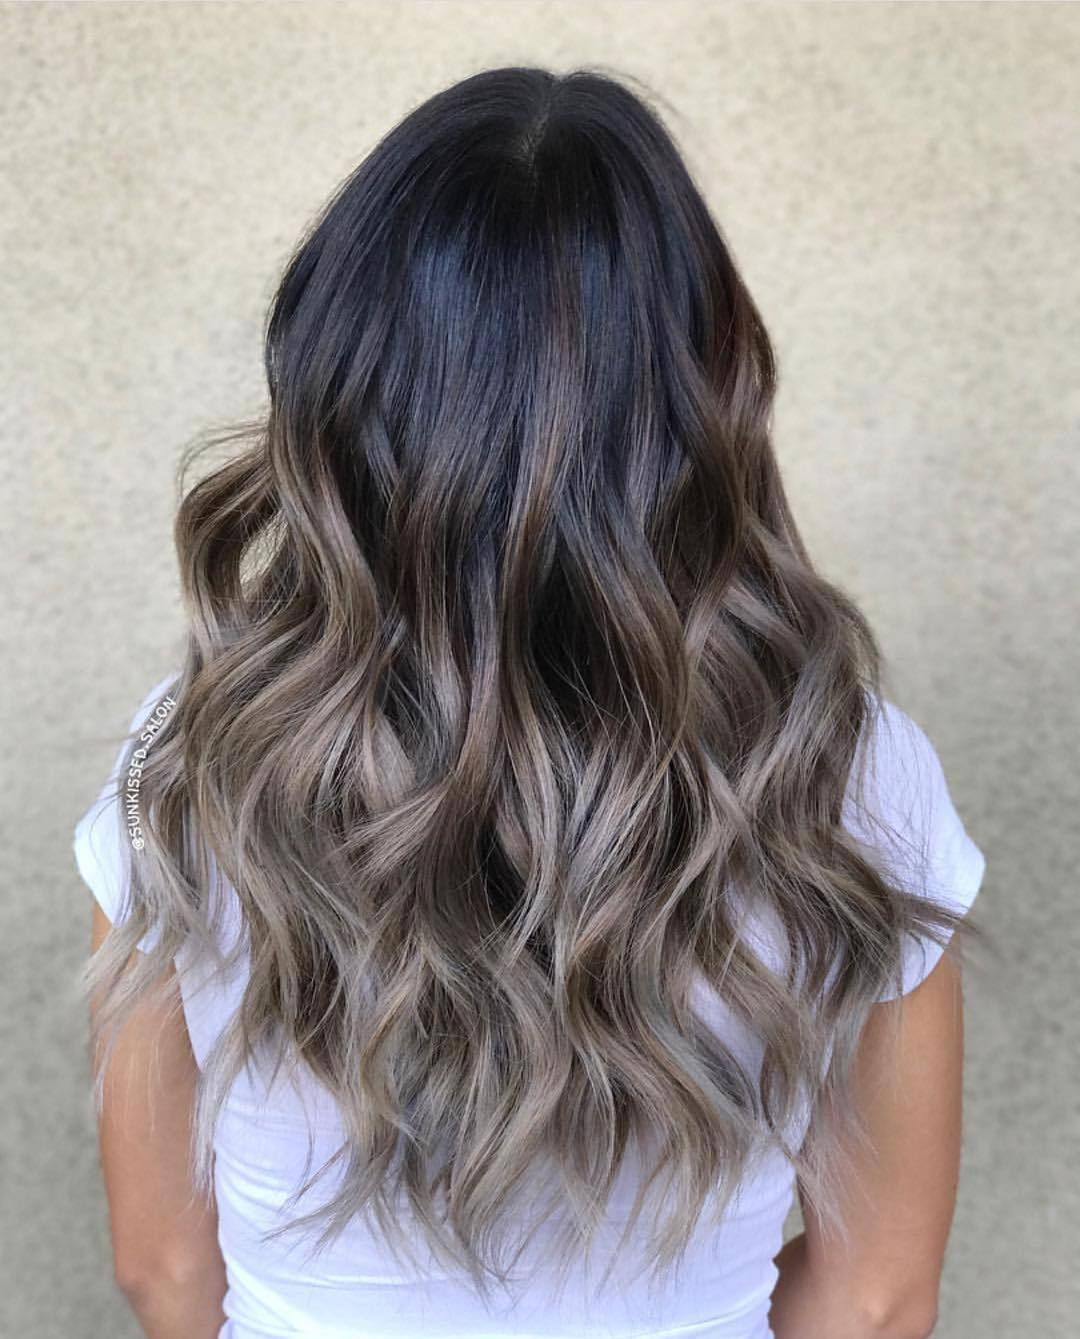 Ombre Hair Color Ideas For Women Ombre Hair Blonde Hair Styles Hair Color